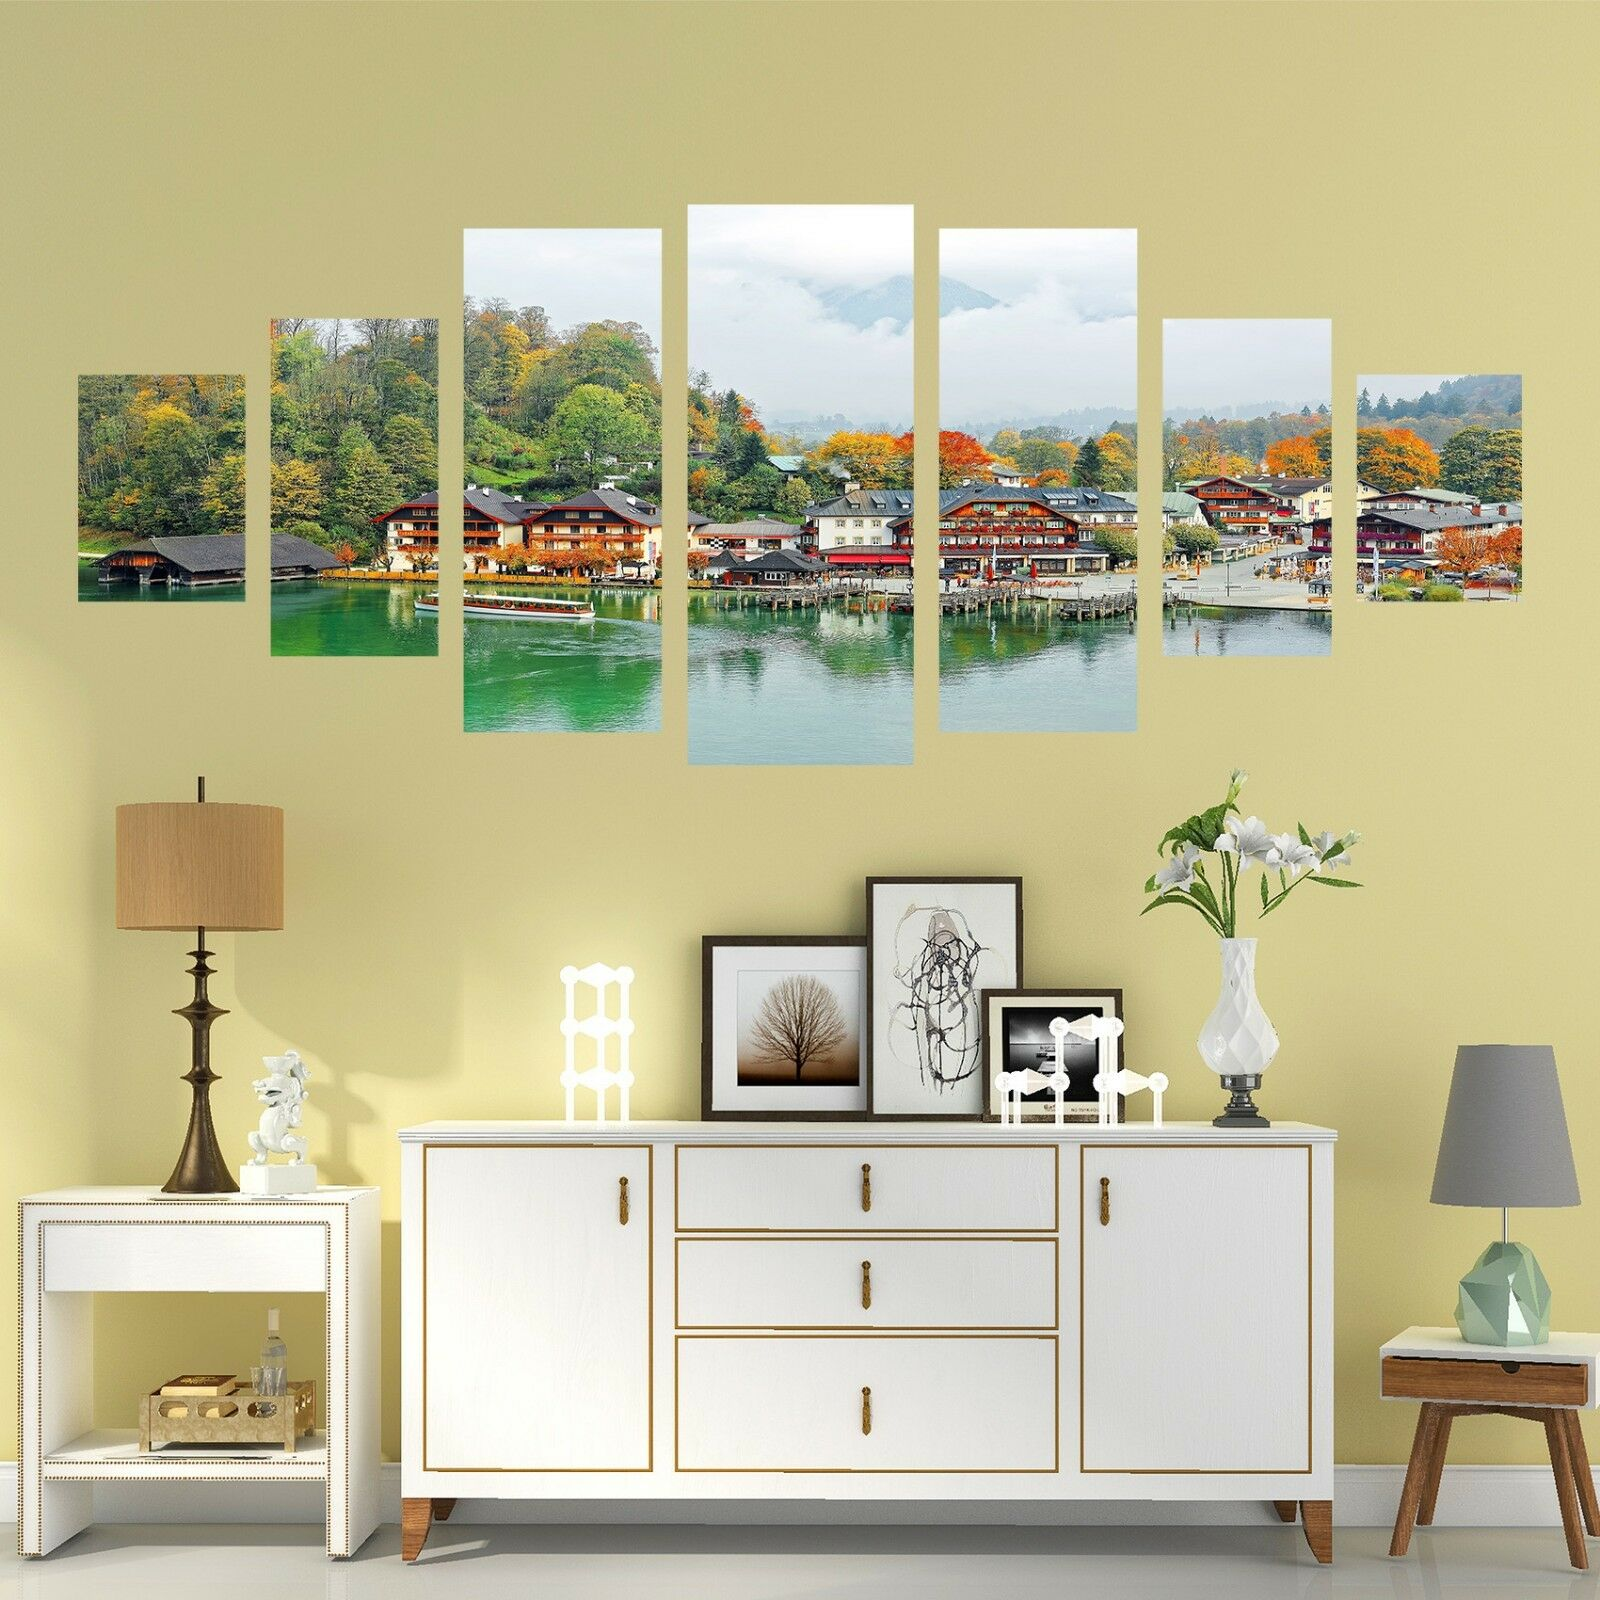 3D Village 882 Unframed Print Wall Paper Decal Wall Deco Indoor AJ Wall Jenny